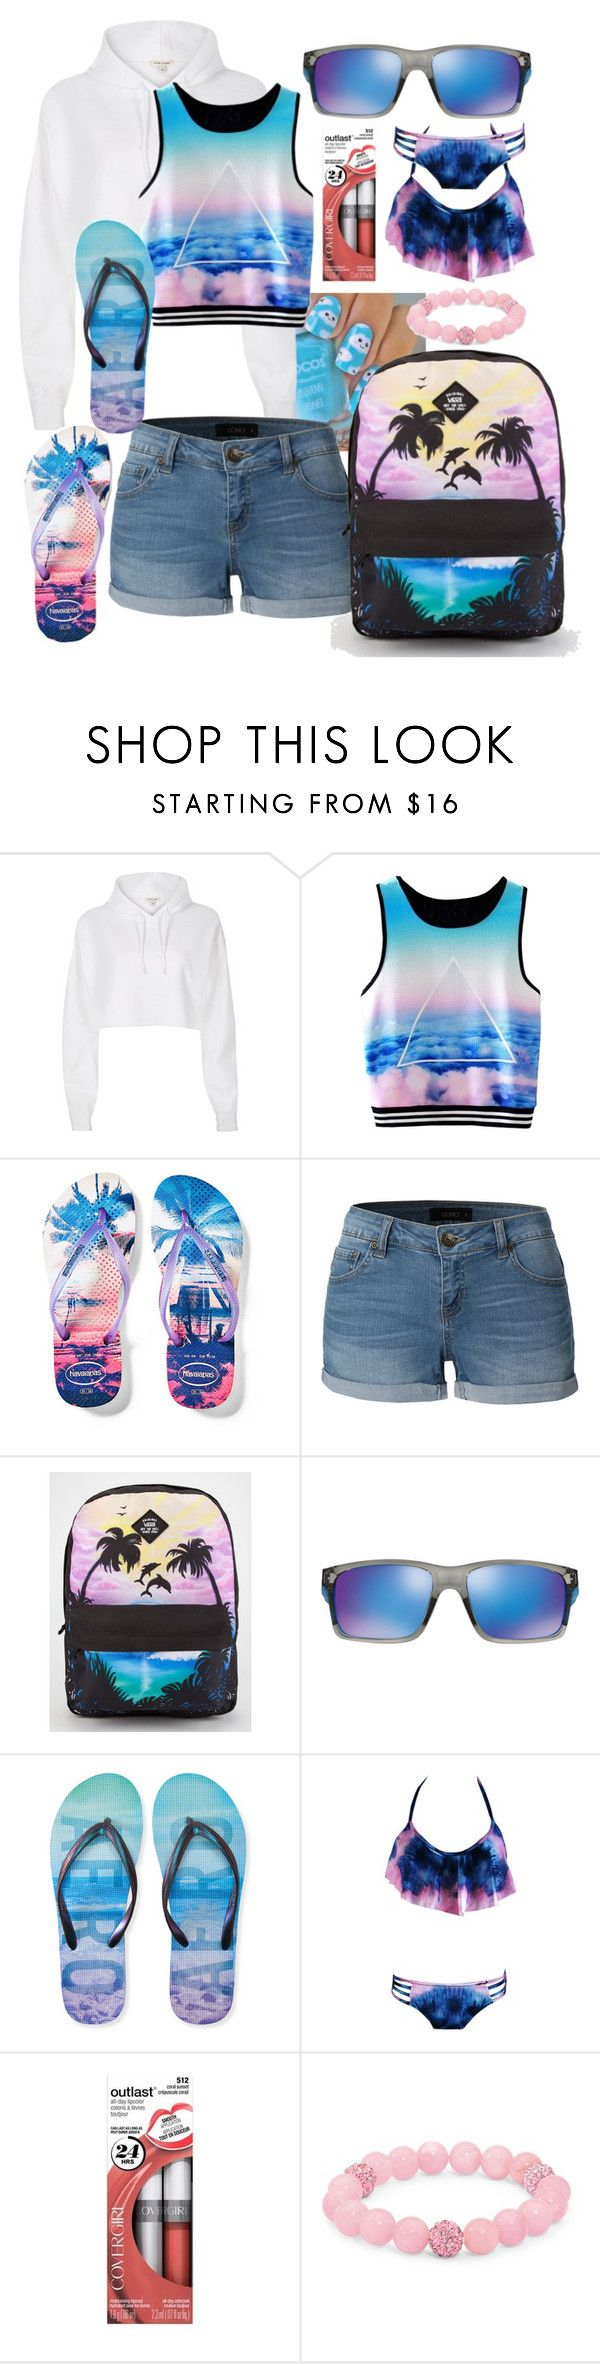 """""""Summer Is Here"""" by thea-bleasdille ❤ liked on Polyvore featuring River Island, Havaianas, LE3NO, Vans, Oakley, Aéropostale, Palm Beach Jewelry and beachparty"""